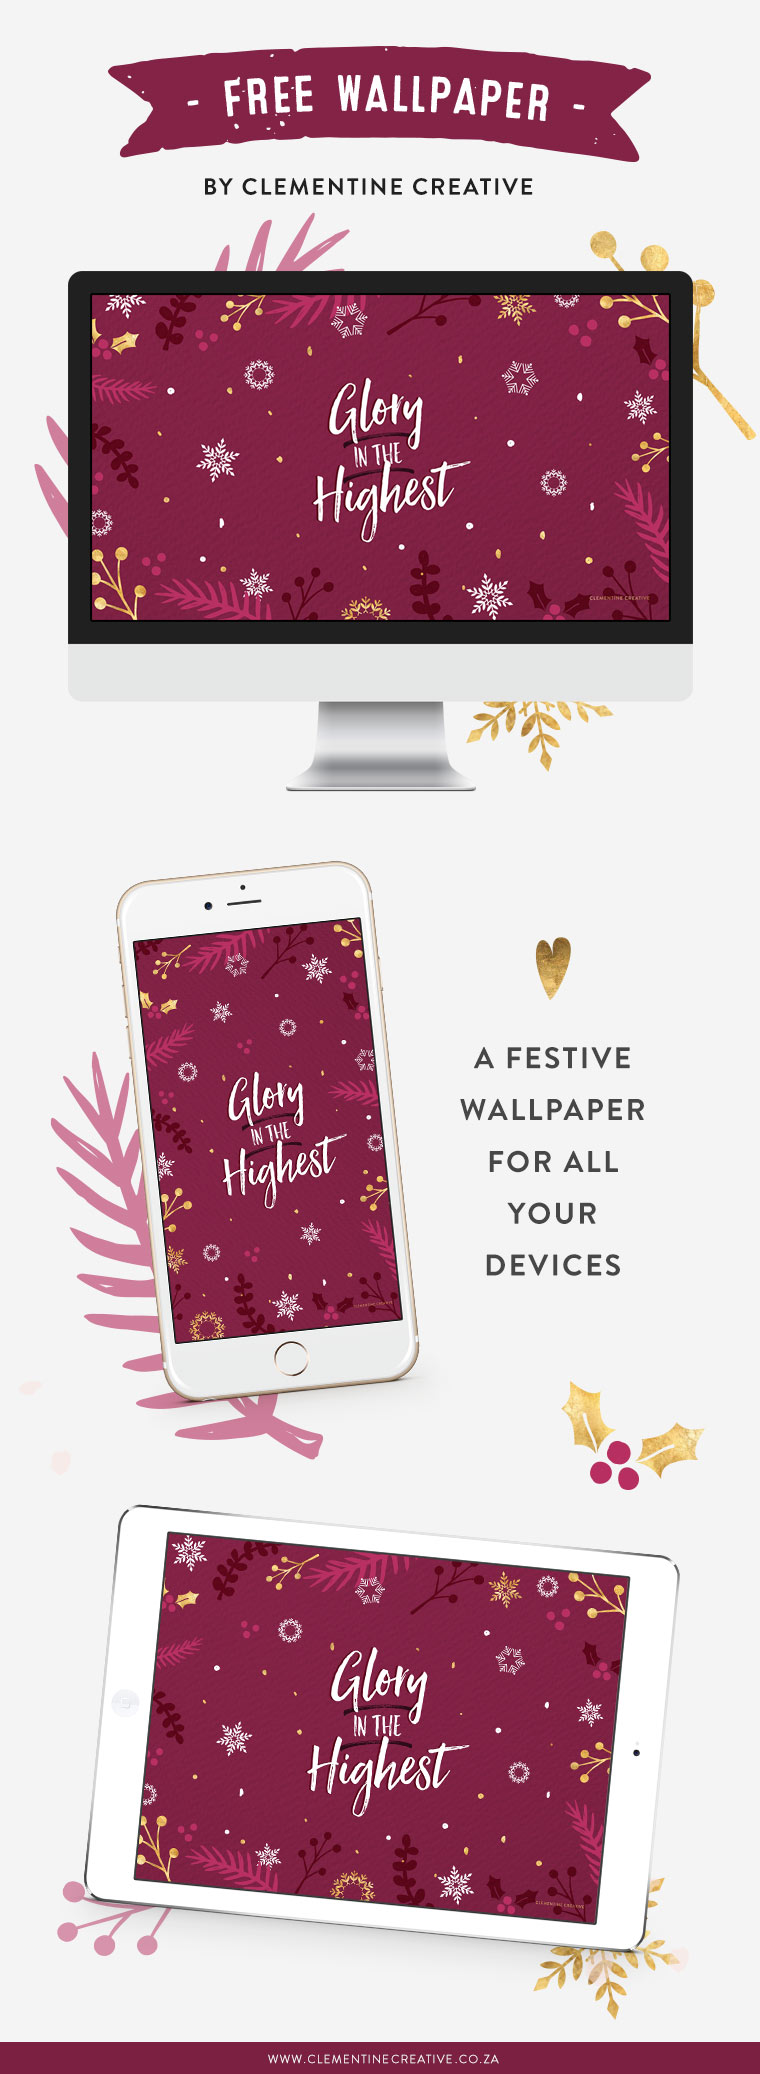 free Christmas wallpaper for desktop, tablet and smartphone